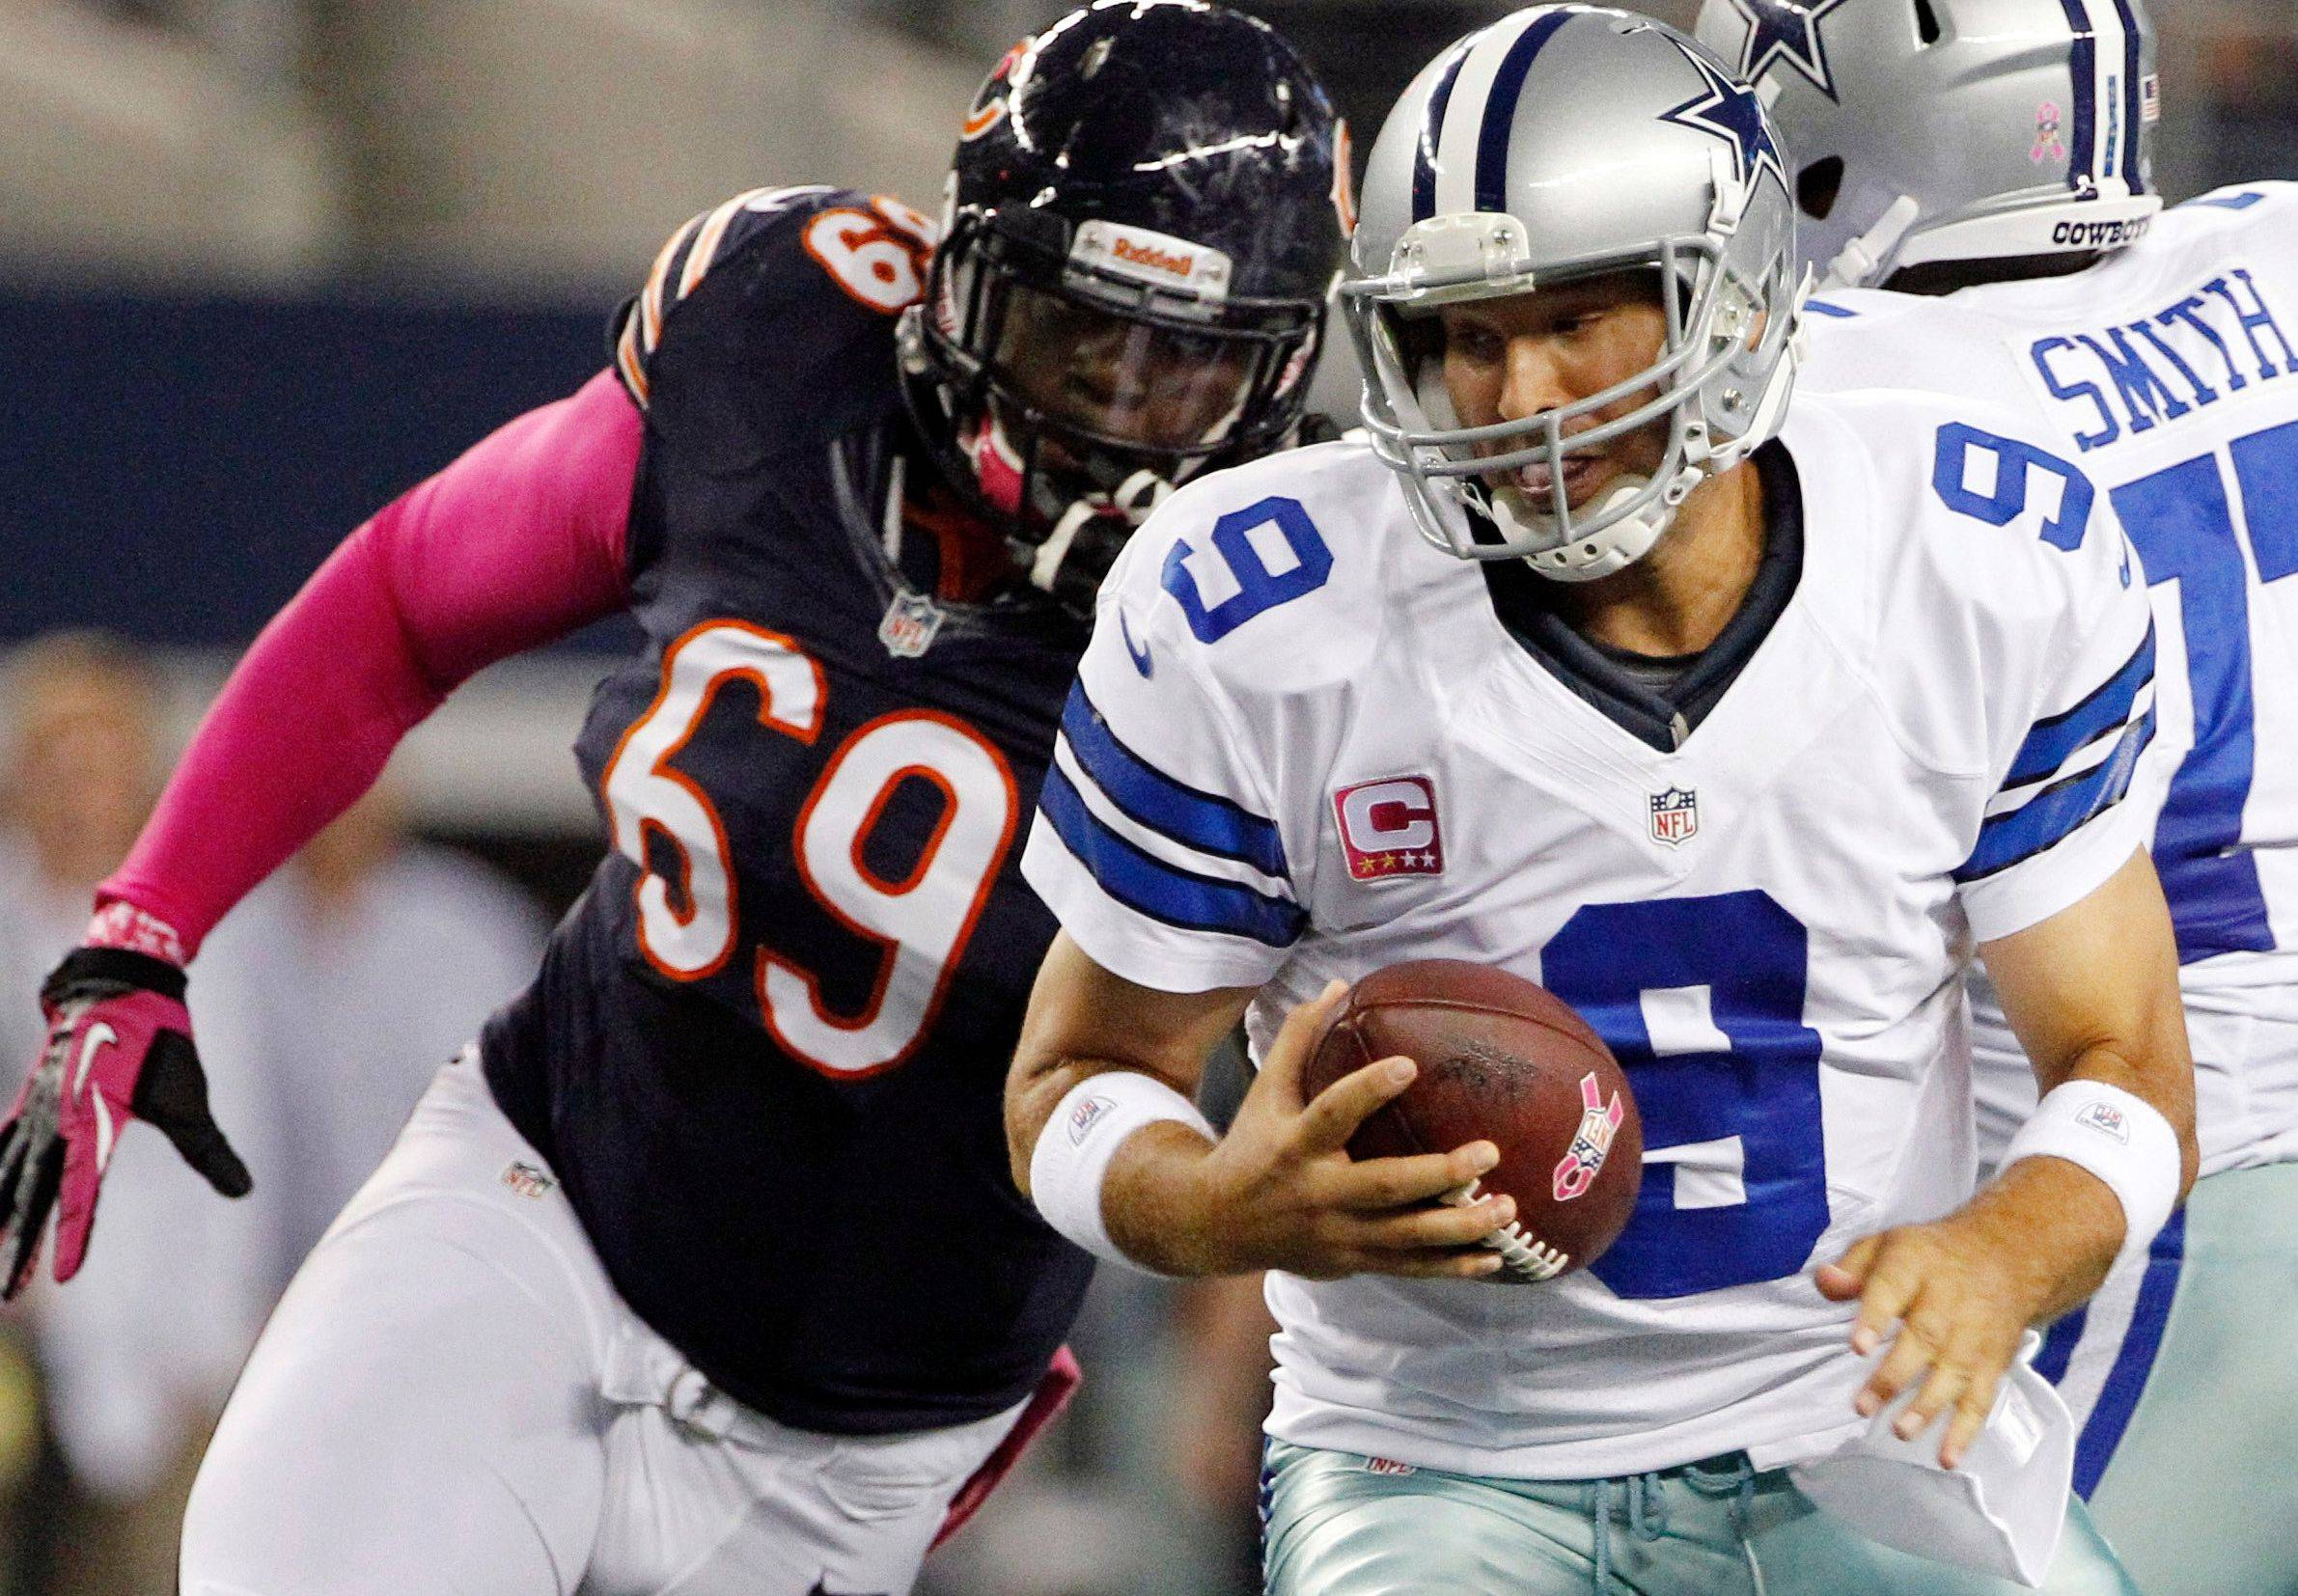 Henry Melton moves in to sack Tony Romo during the first half of the Bears' victory Monday. For Melton, it was his team-high fourth sack.